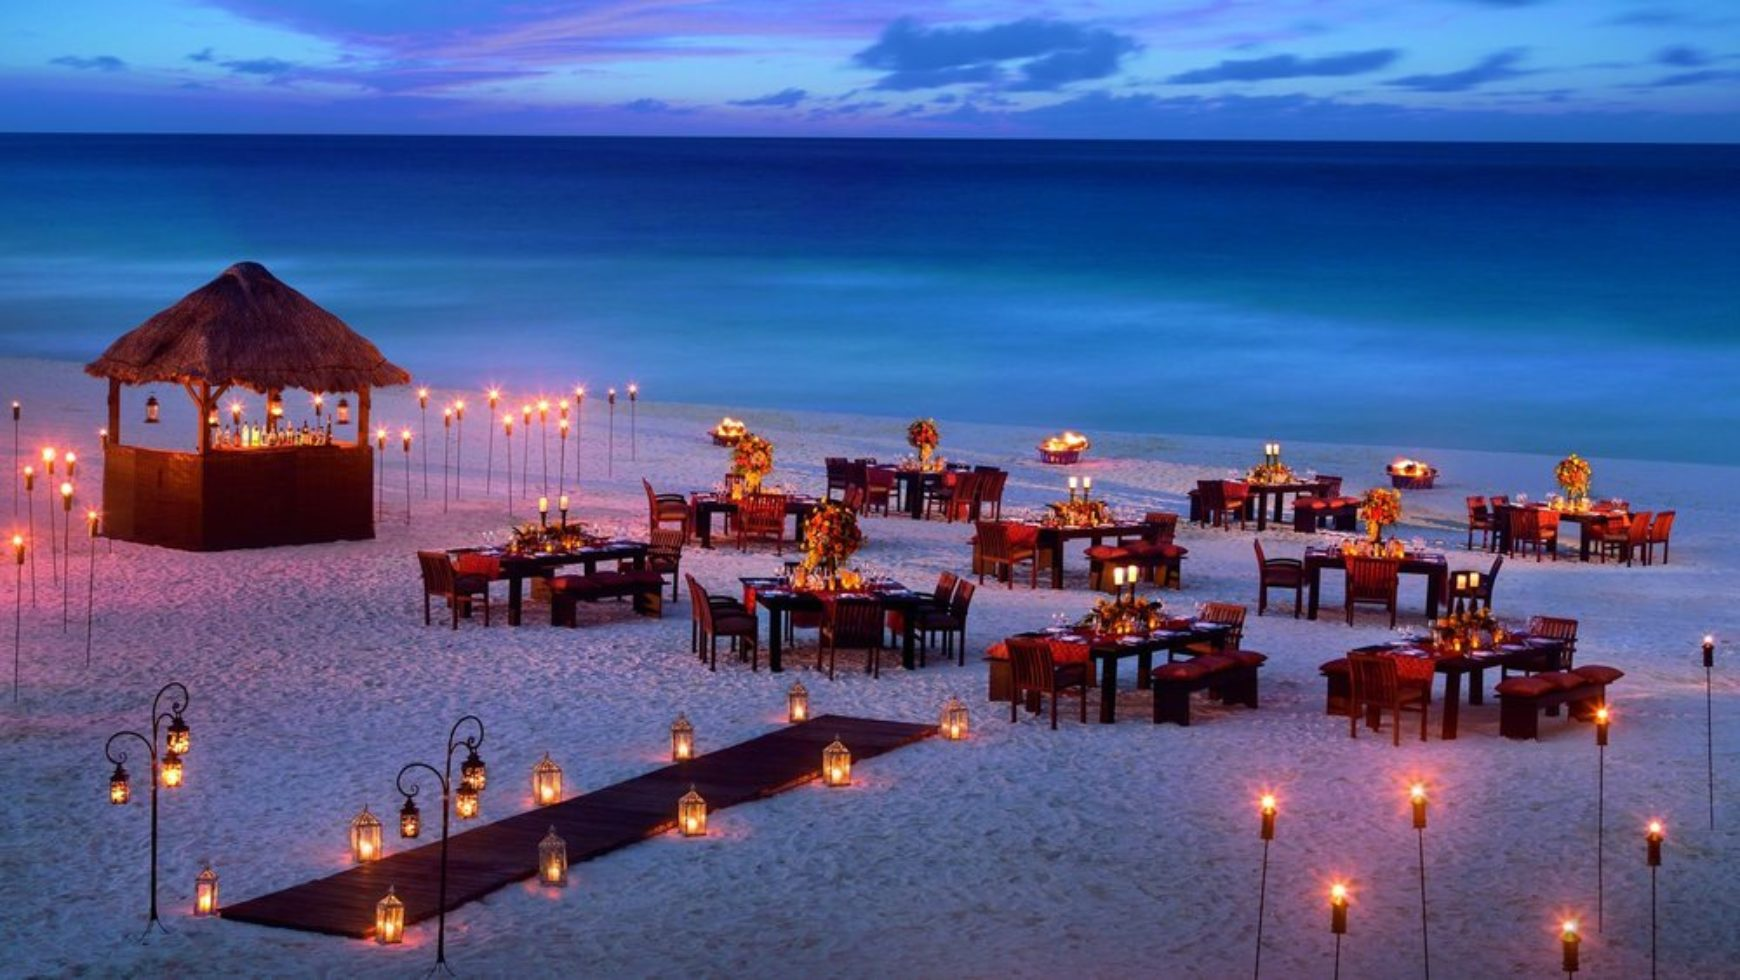 Best Destination Wedding Locations in Your Budget